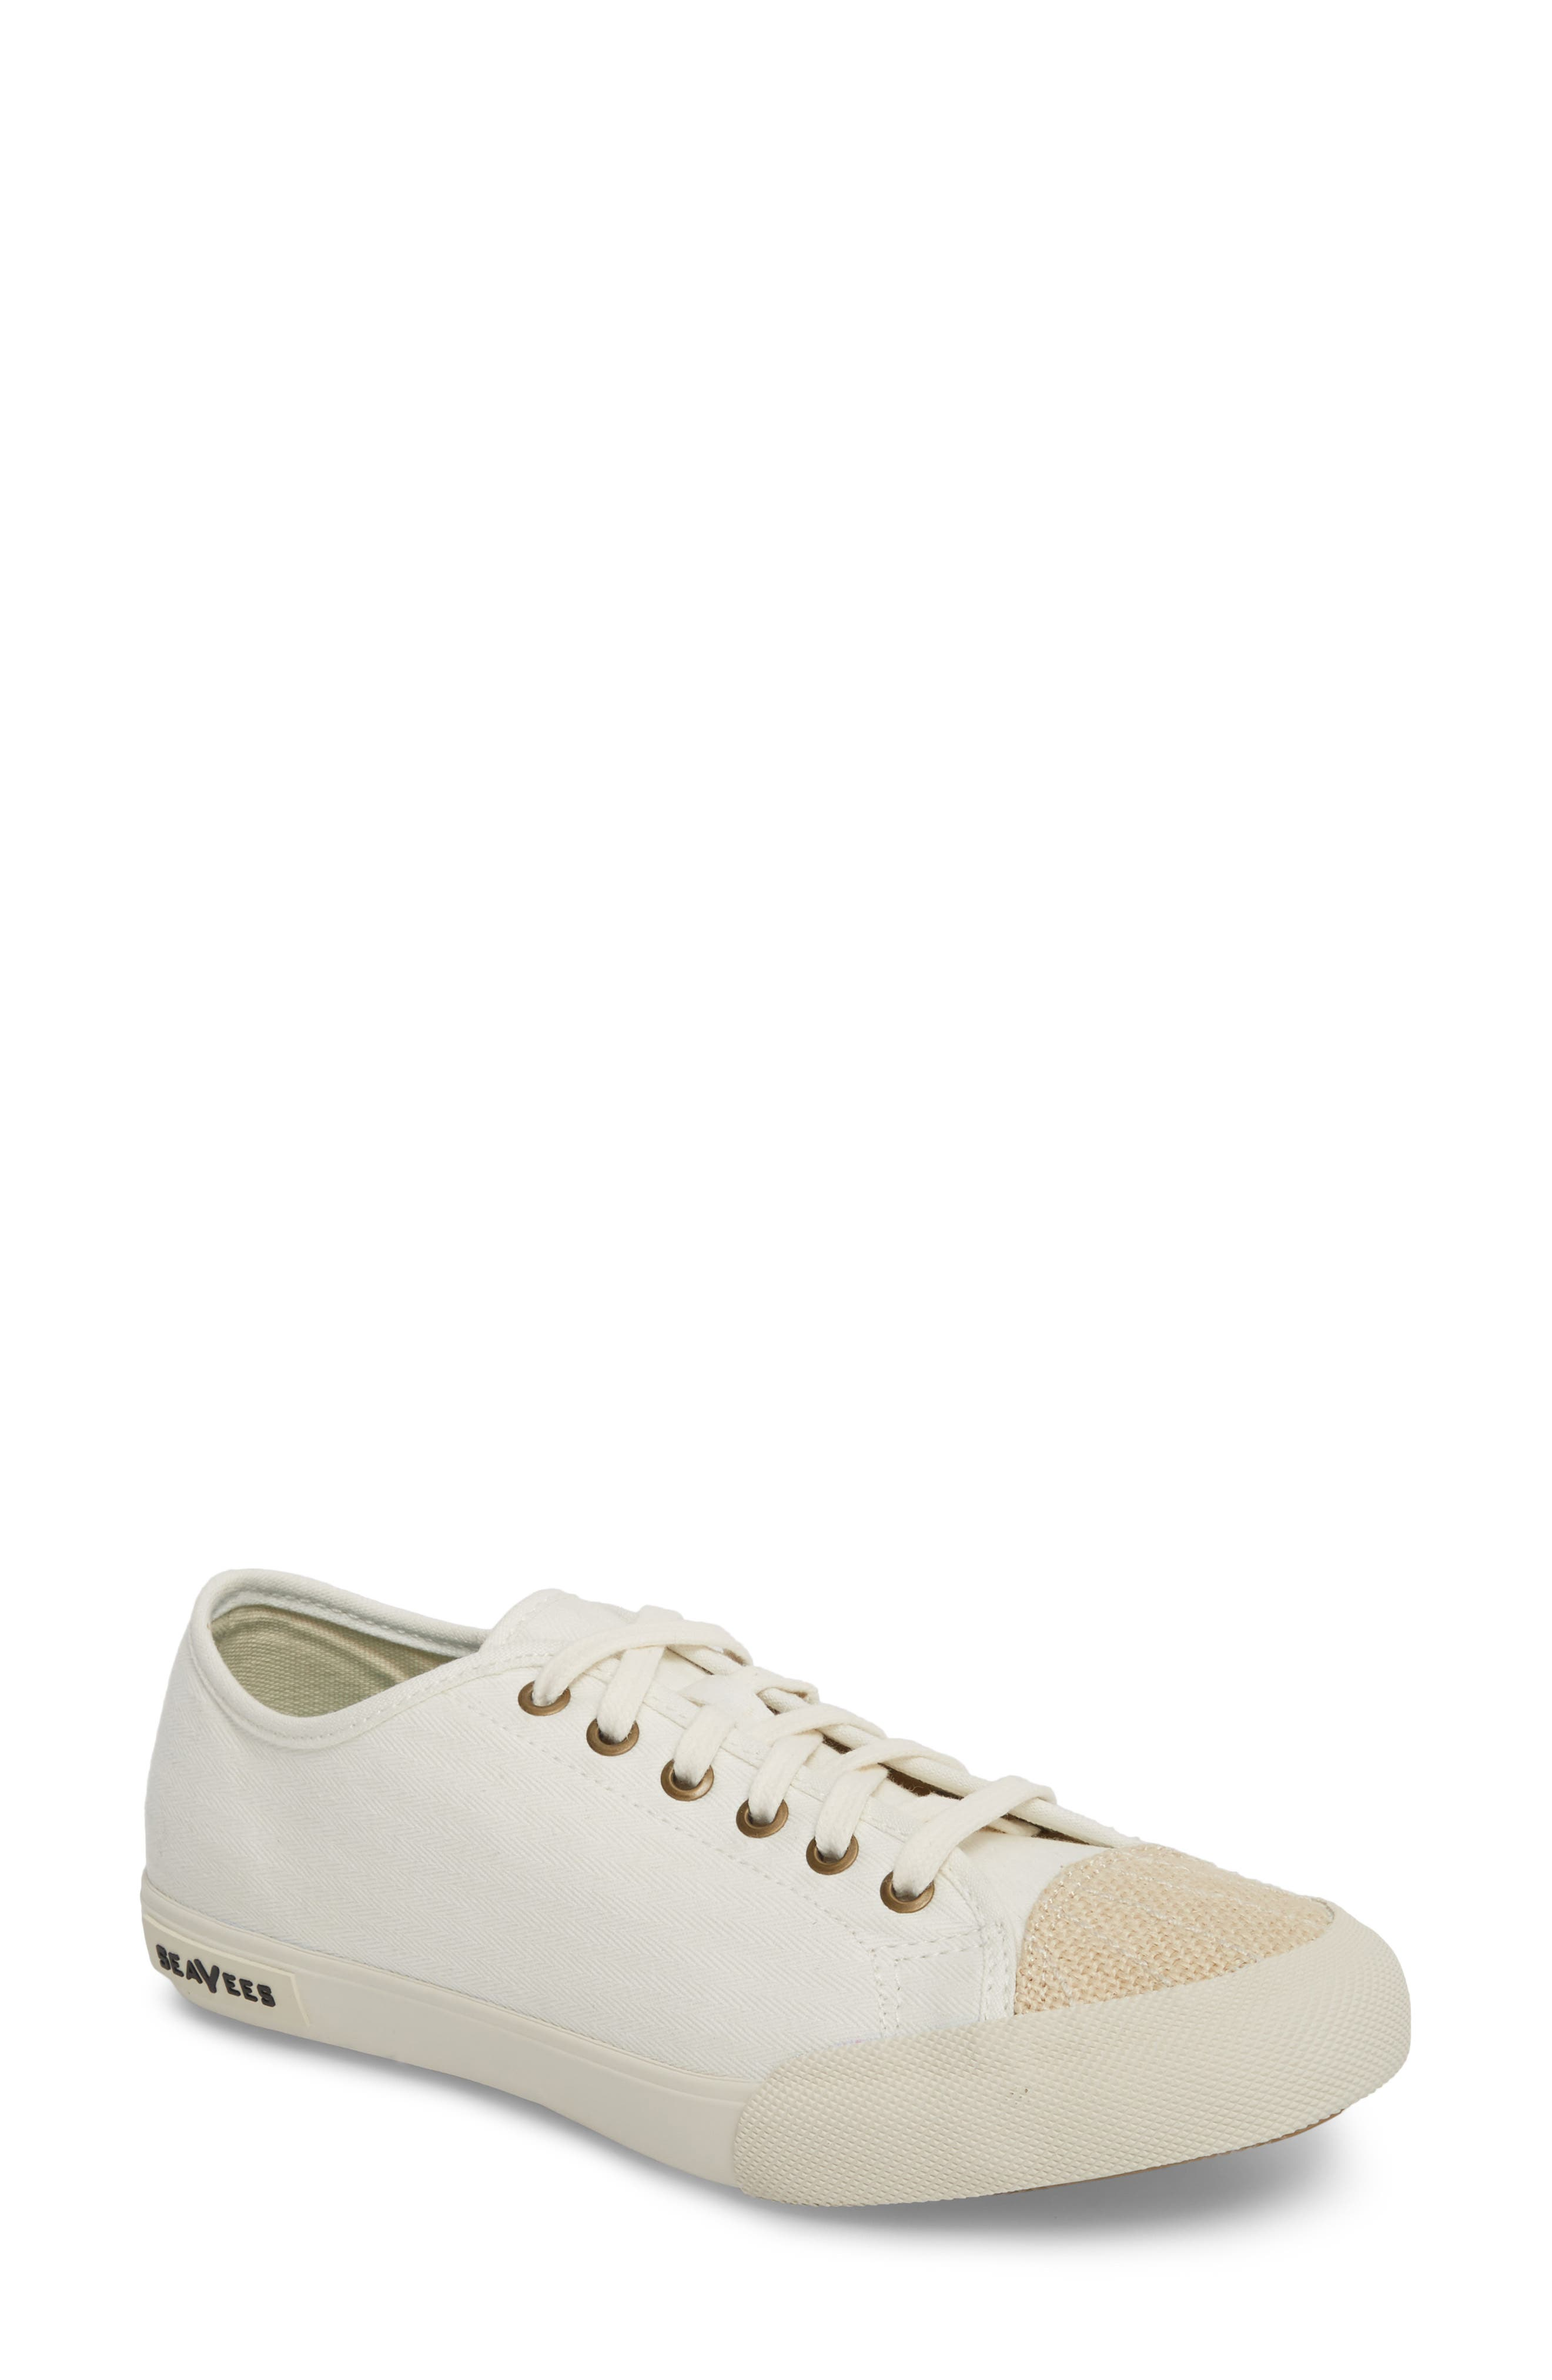 SeaVees Army Issue Low Top Sneaker (Women)